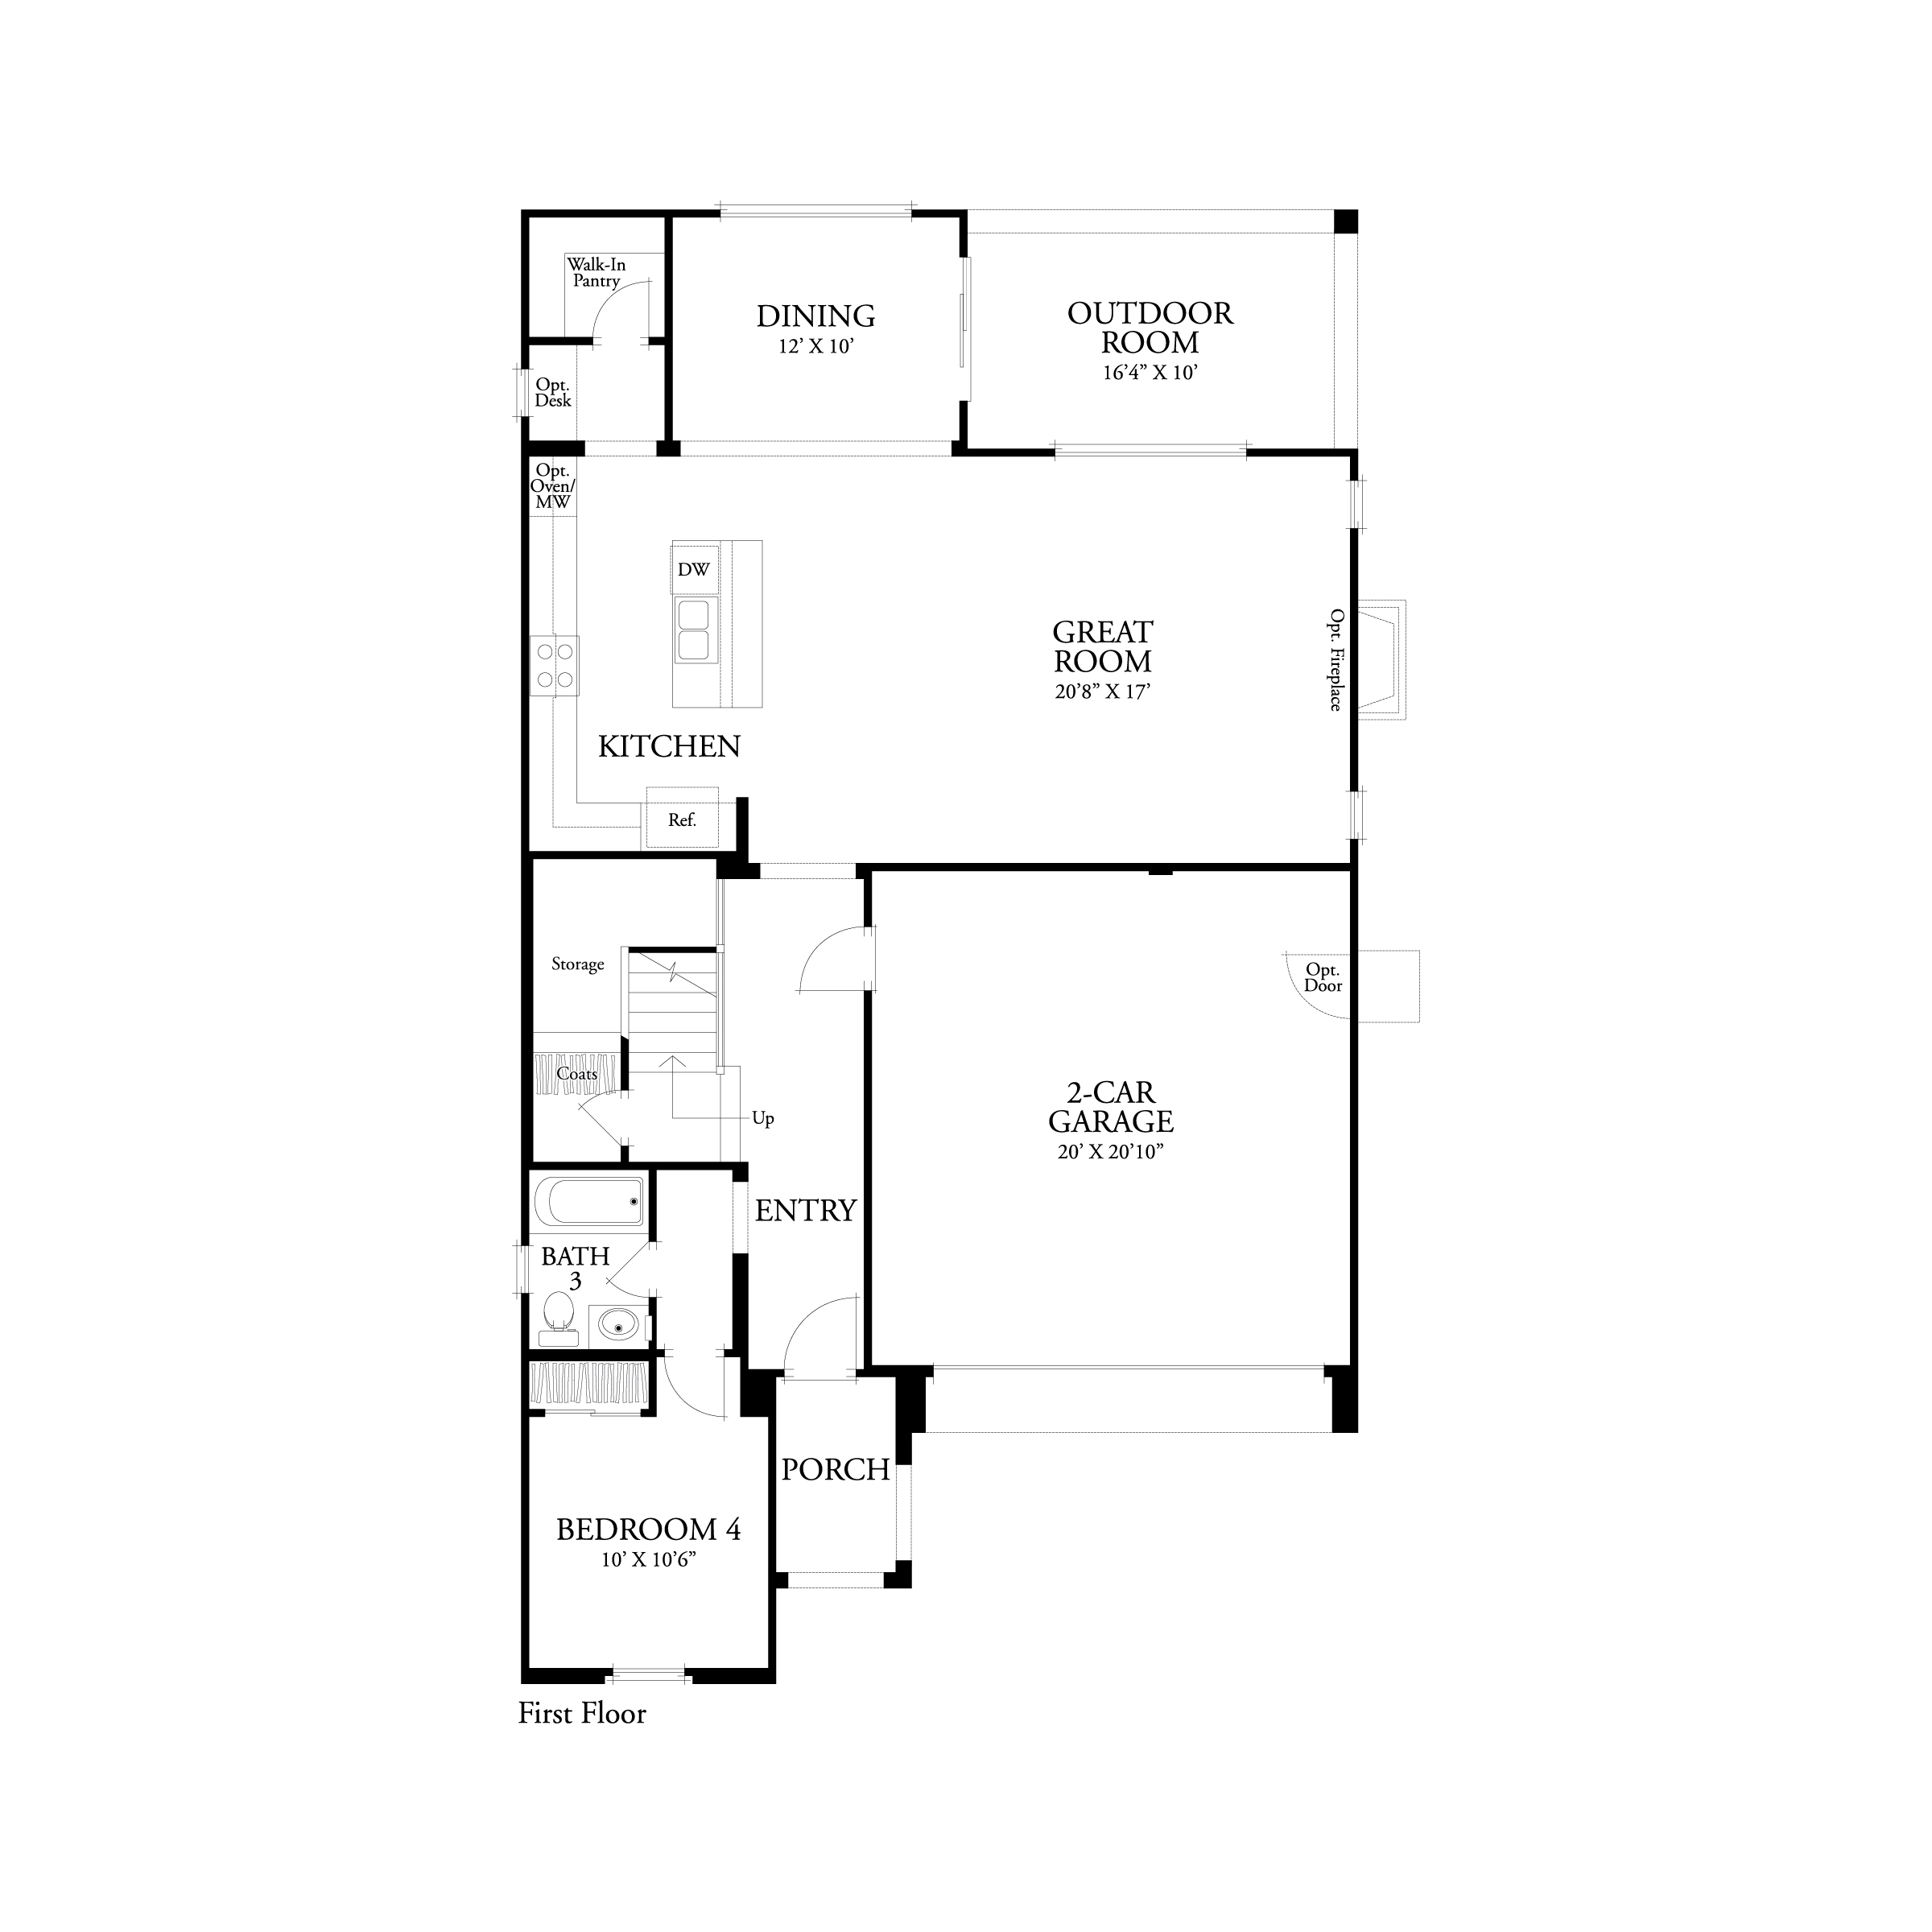 First floor residence 1 floor plan | Marigold at New Haven in Ontario Ranch, CA | Brookfield Residential